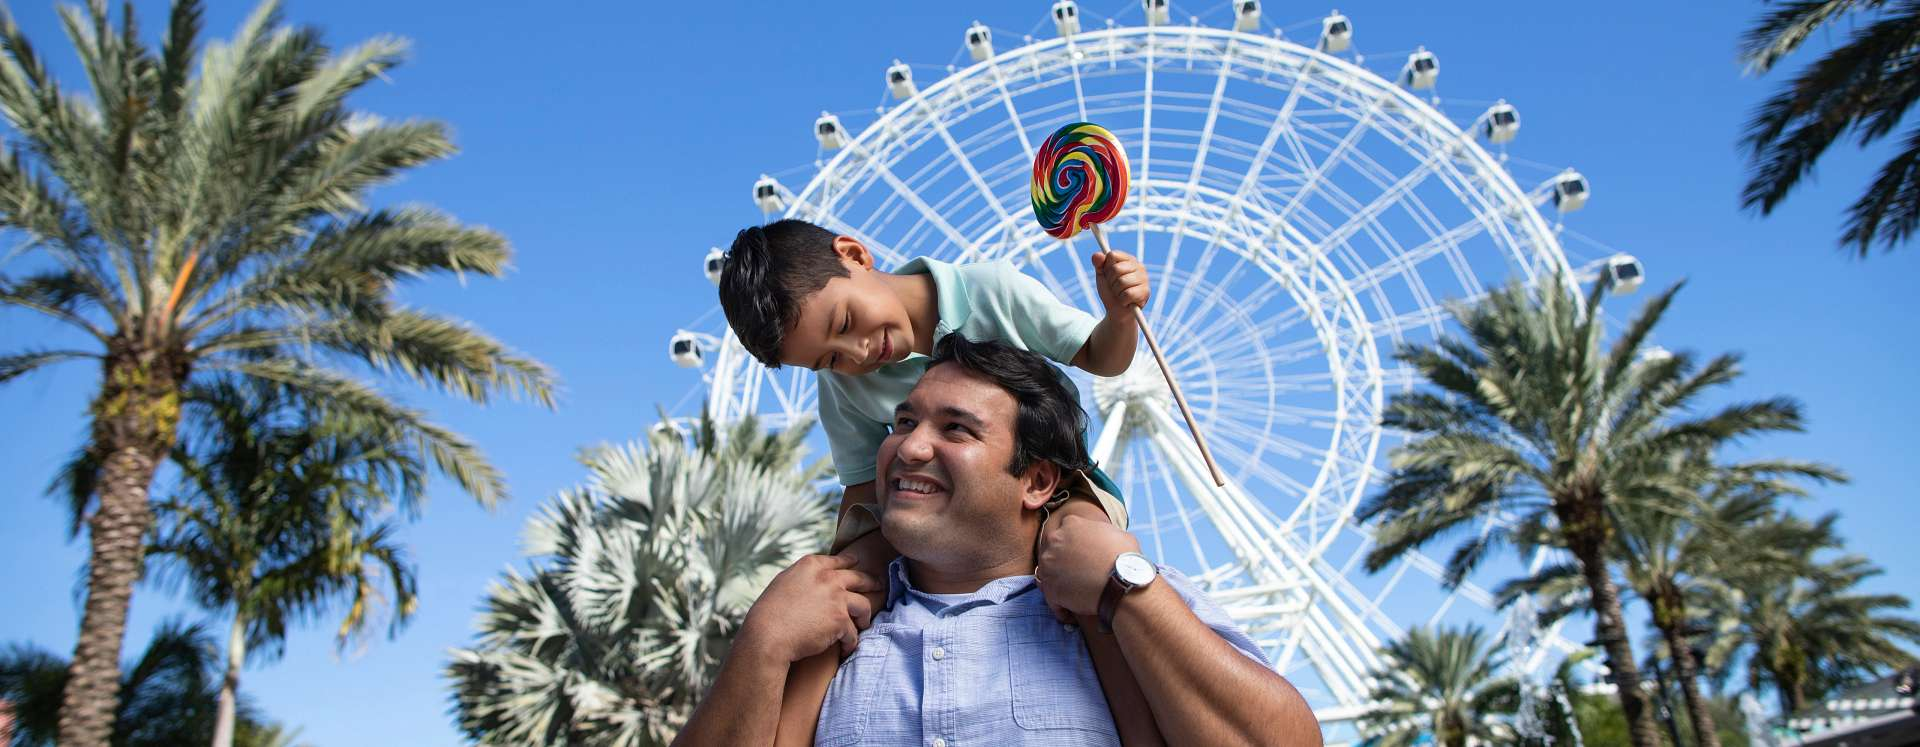 Son riding on his father's shoulders while holding a lollipop at ICON Park on International Drive in Orlando, Florida